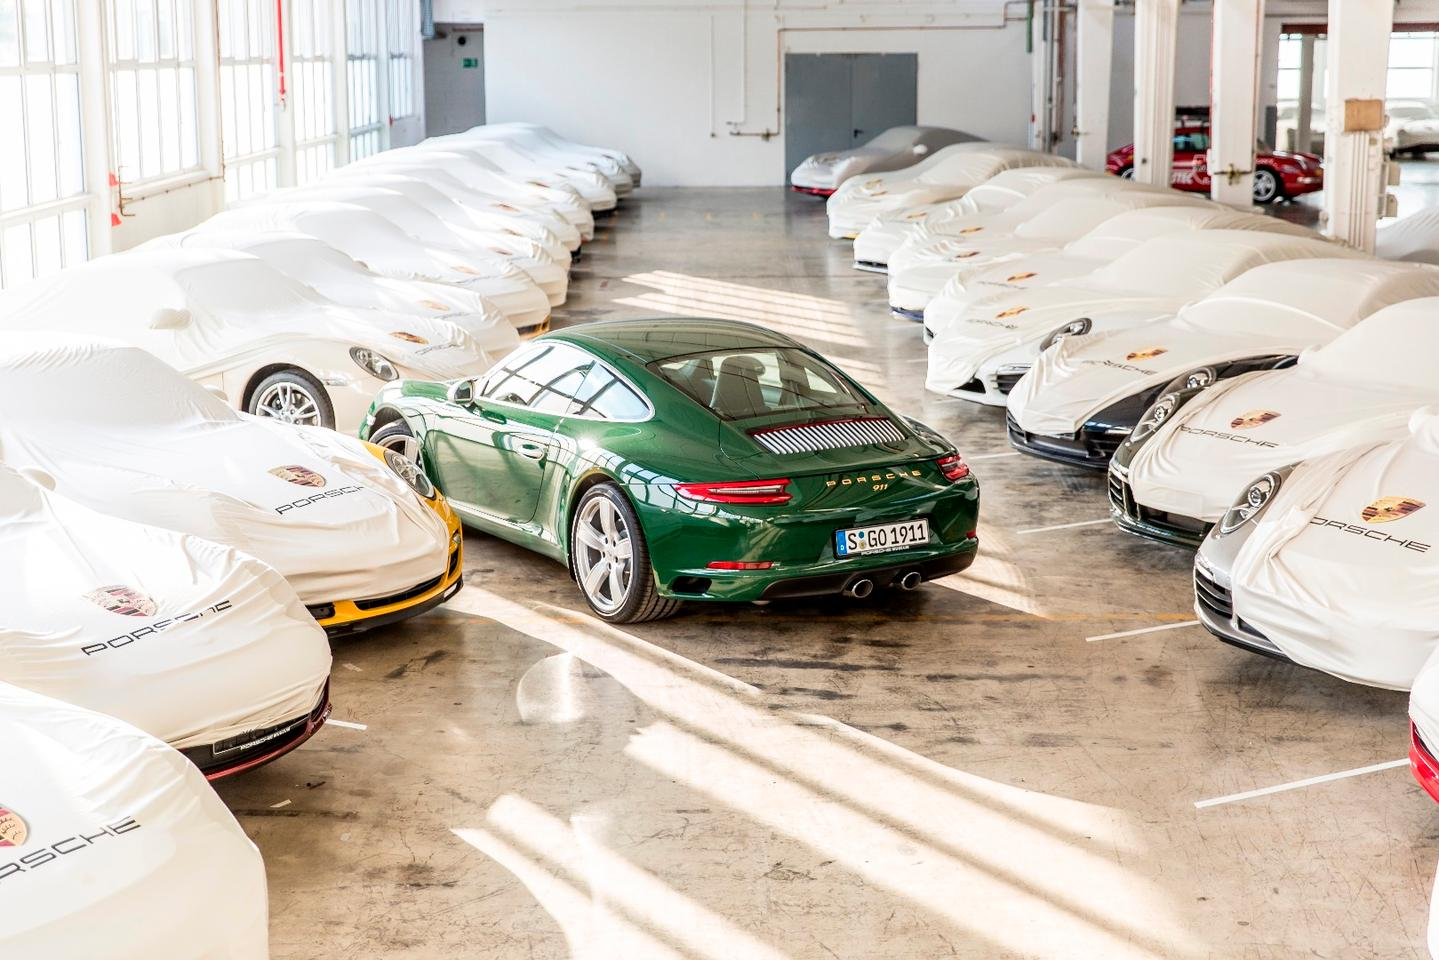 The millionth 911 is bound for the Porsche museum